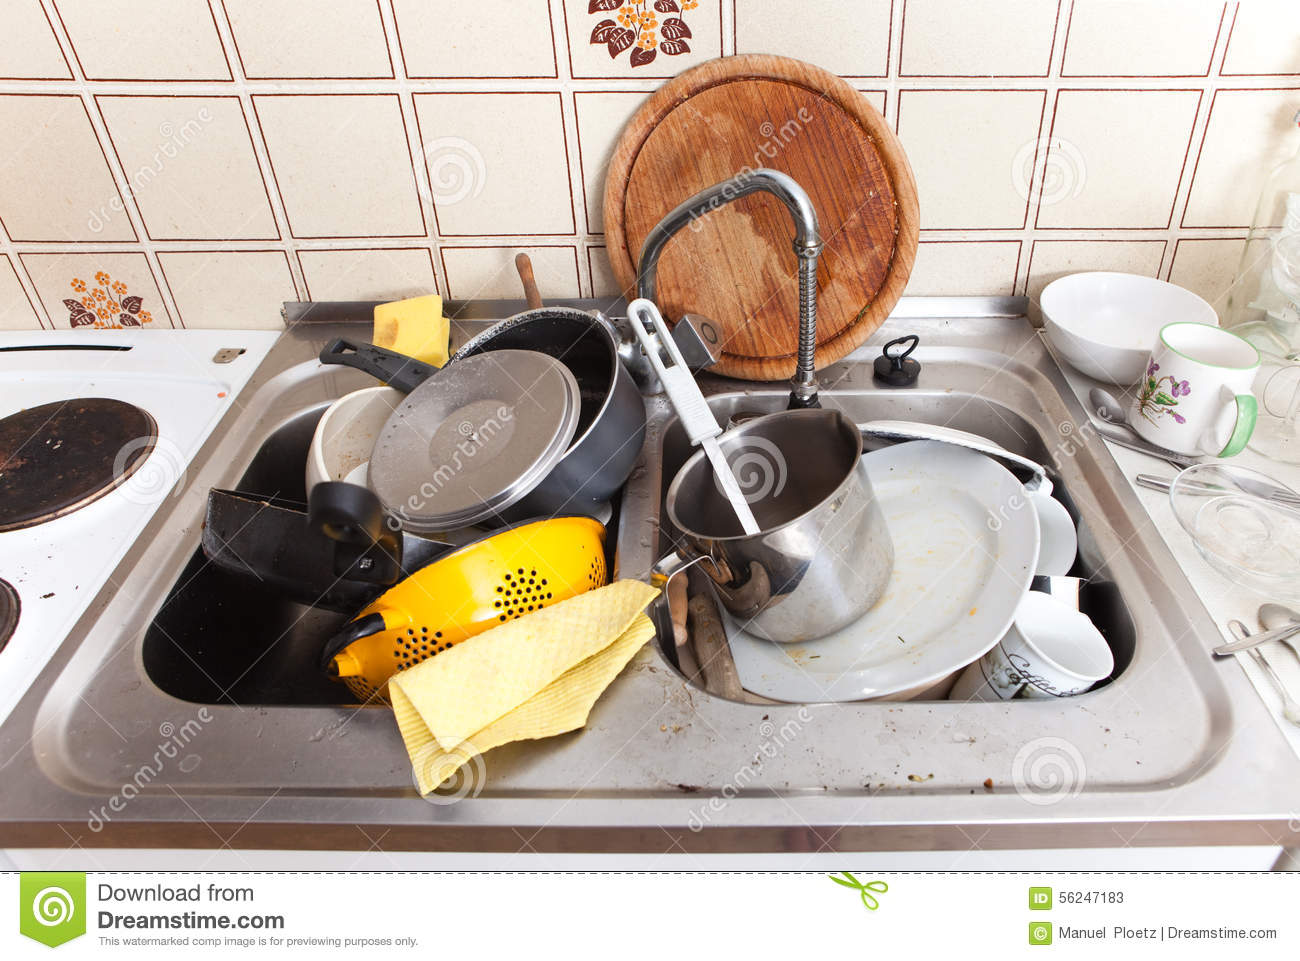 Dirty Kitchen Sink Images